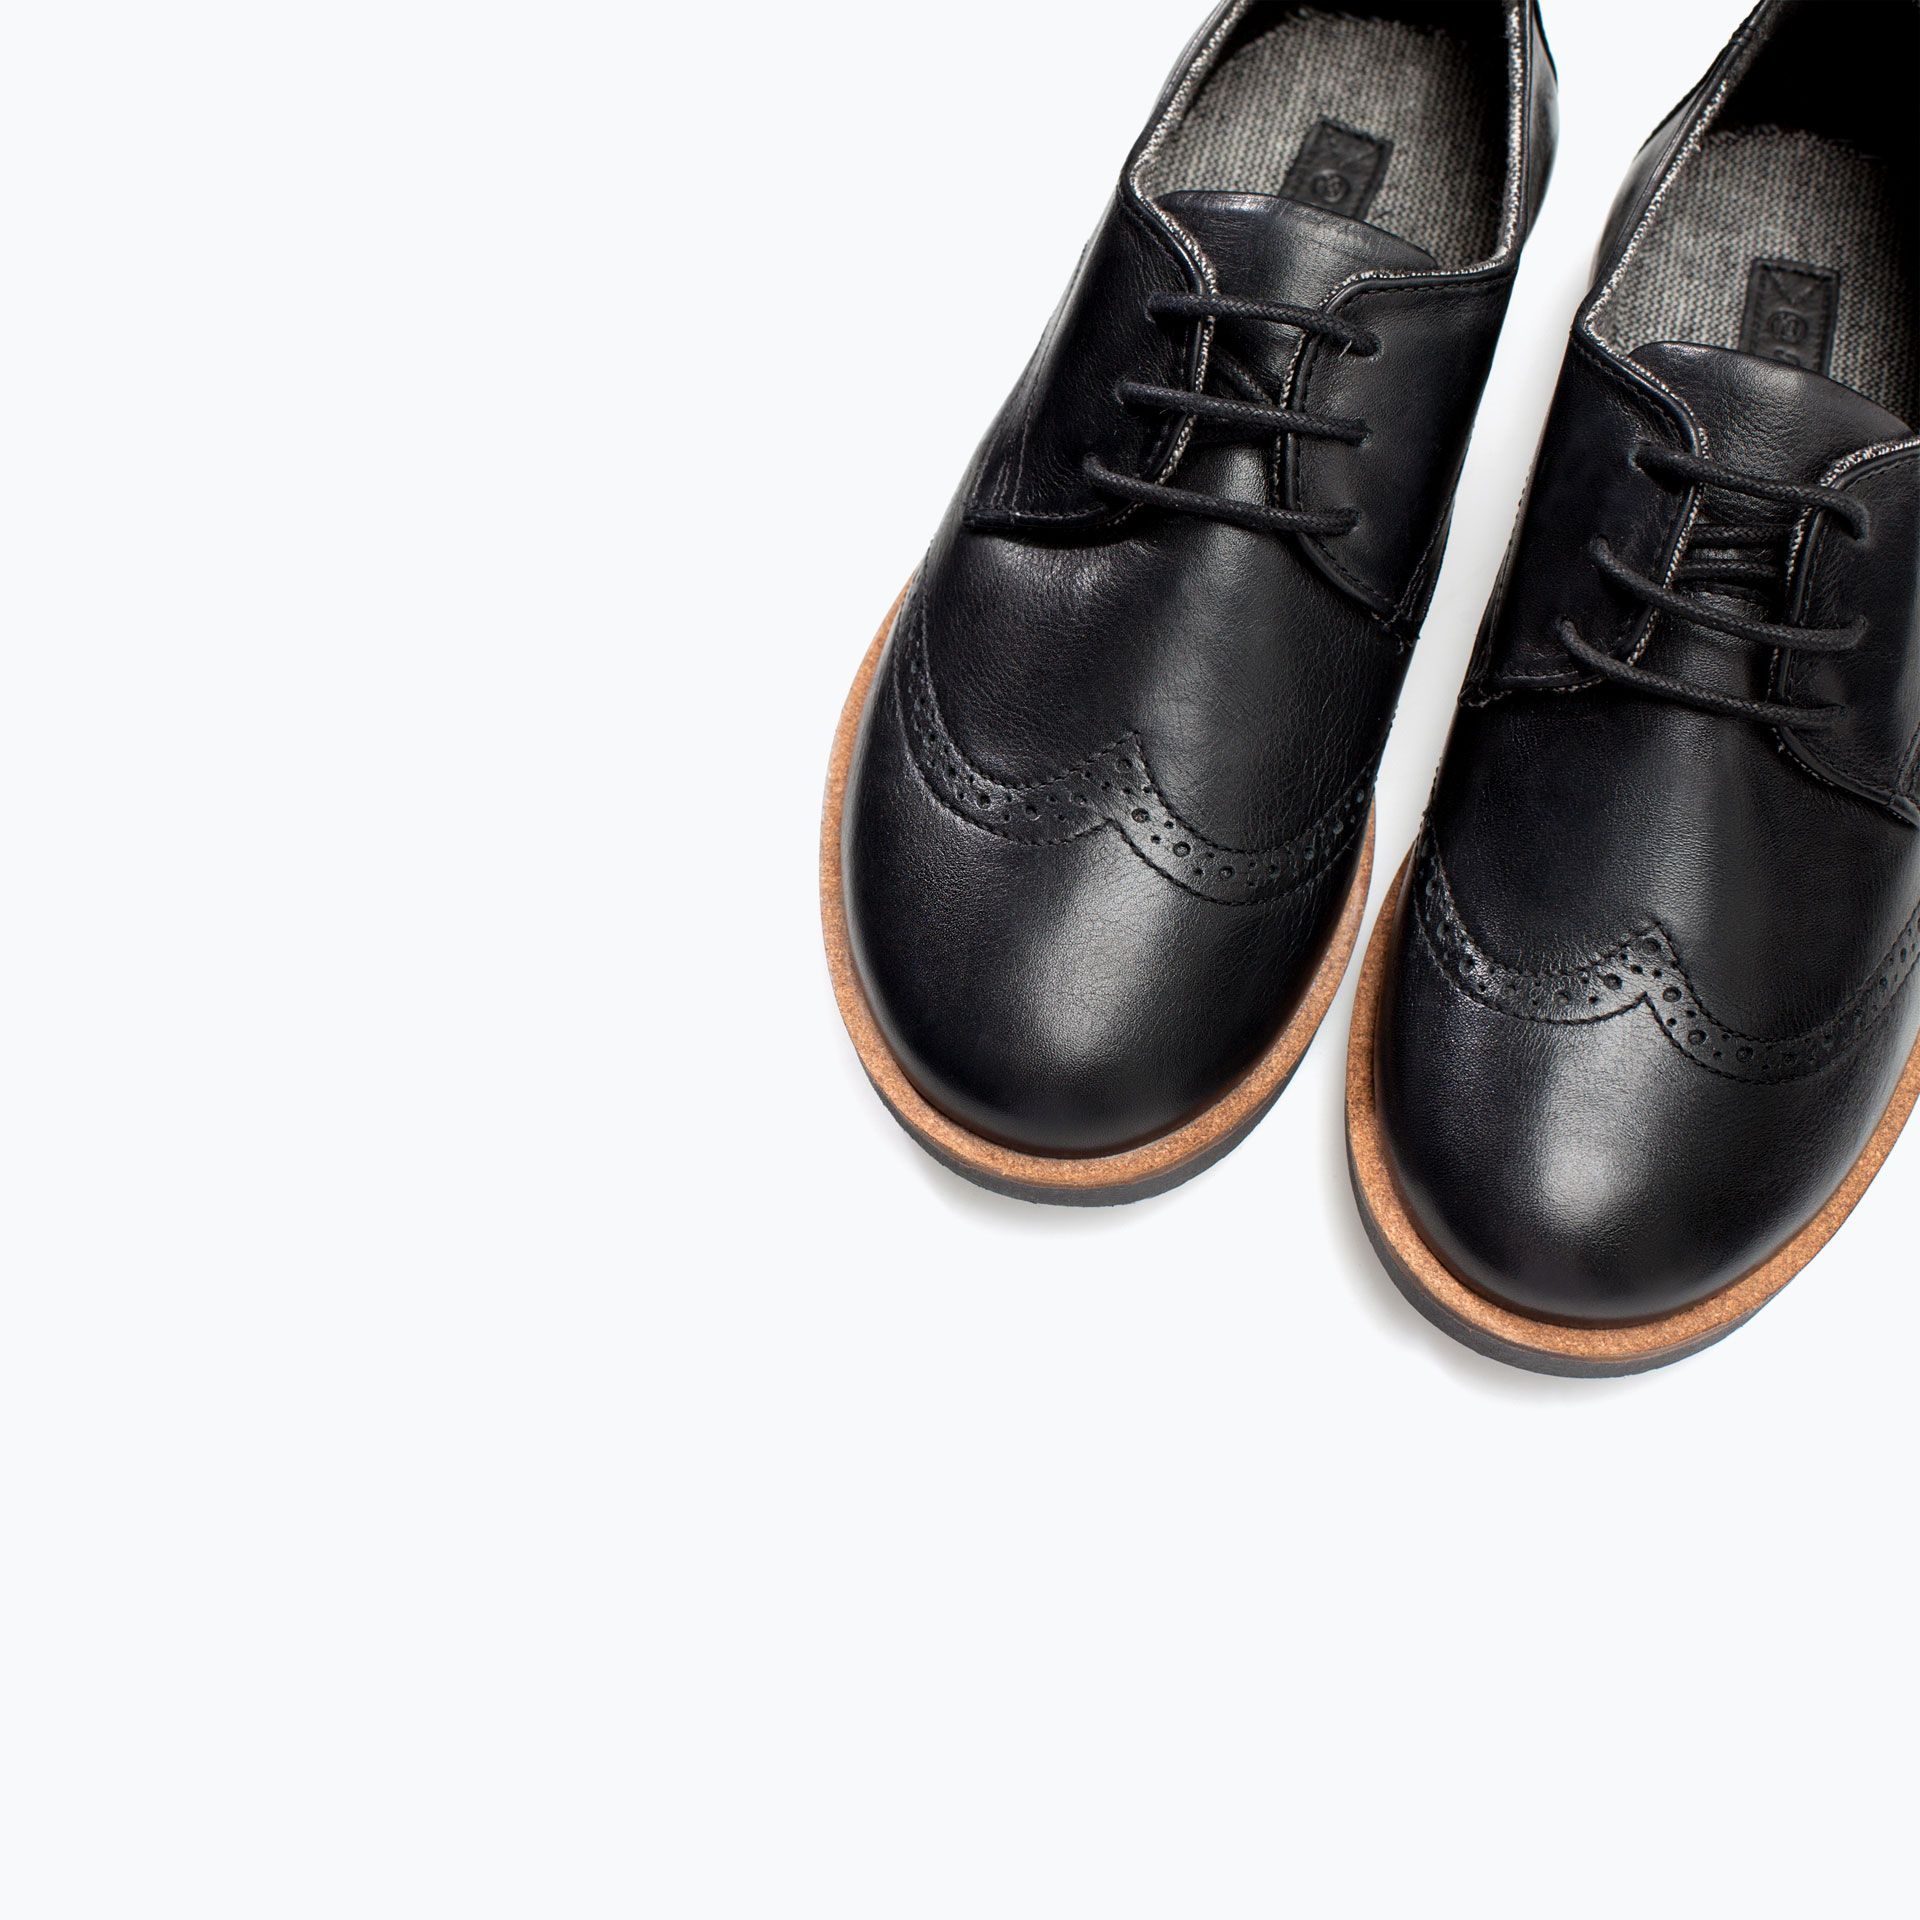 Image 5 of LEATHER BLUCHER from Zara Kid shoes, Boy